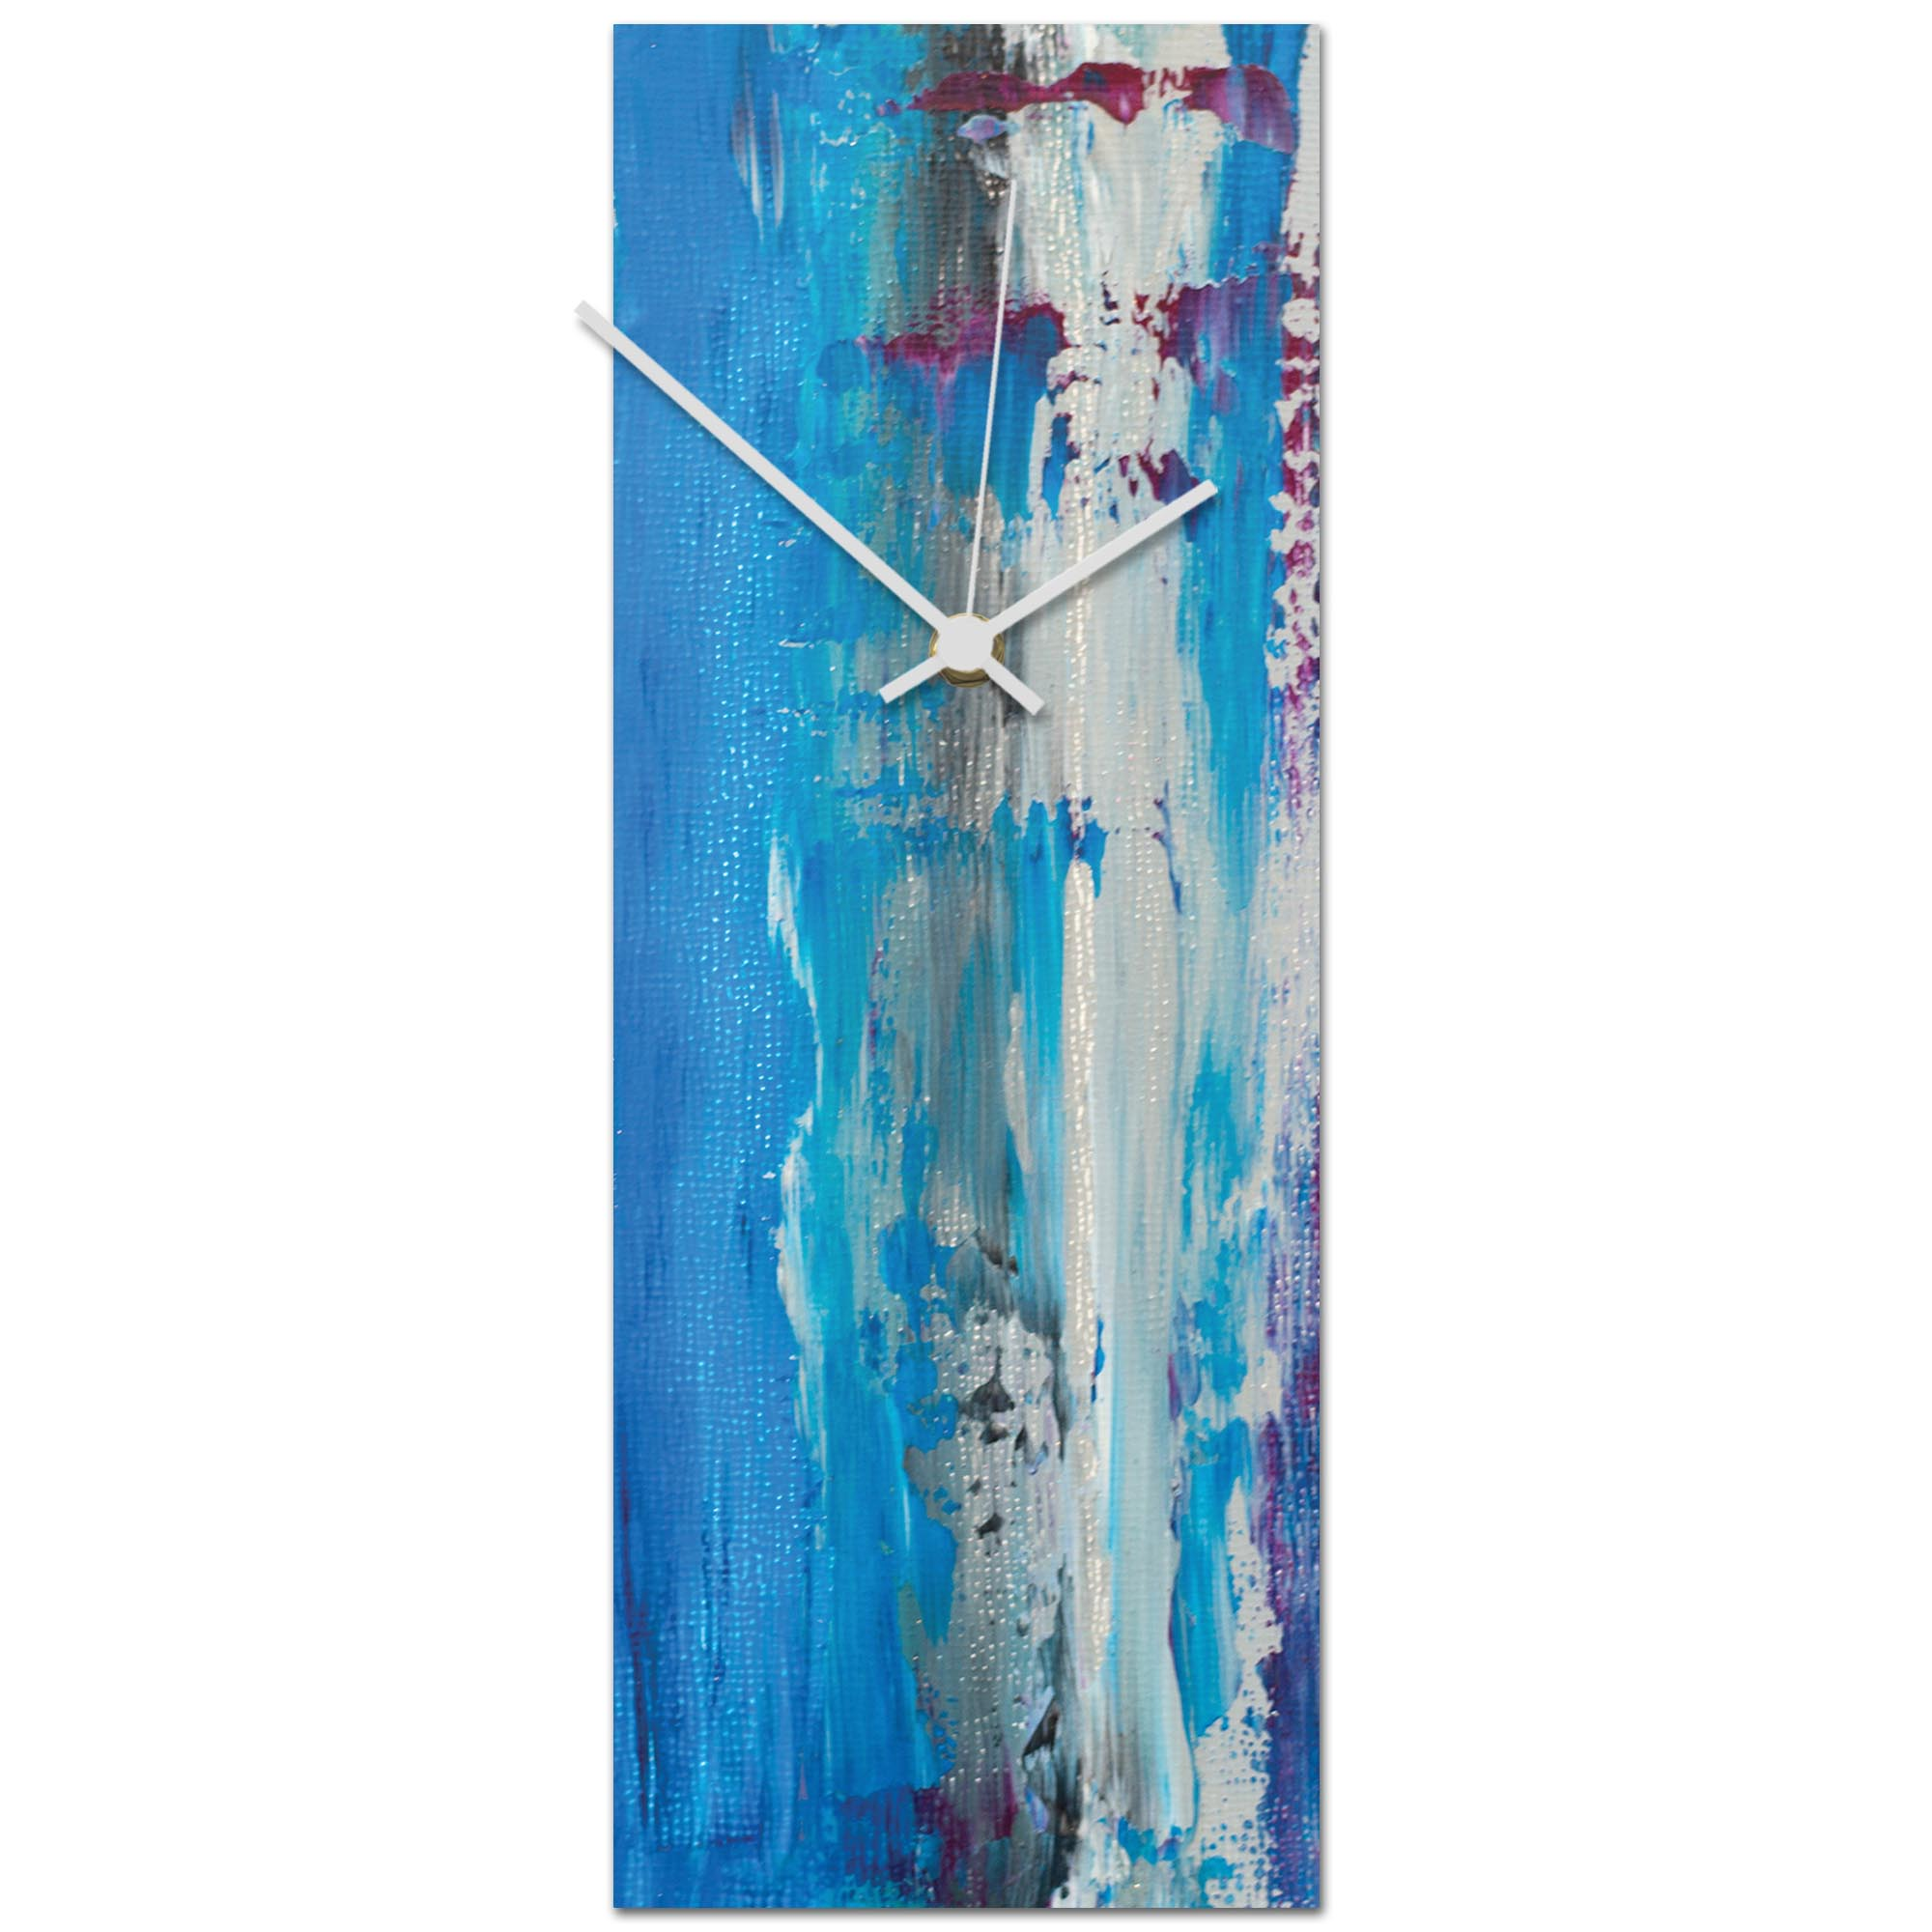 Urban Cool v4 Clock 6x16in. Metal